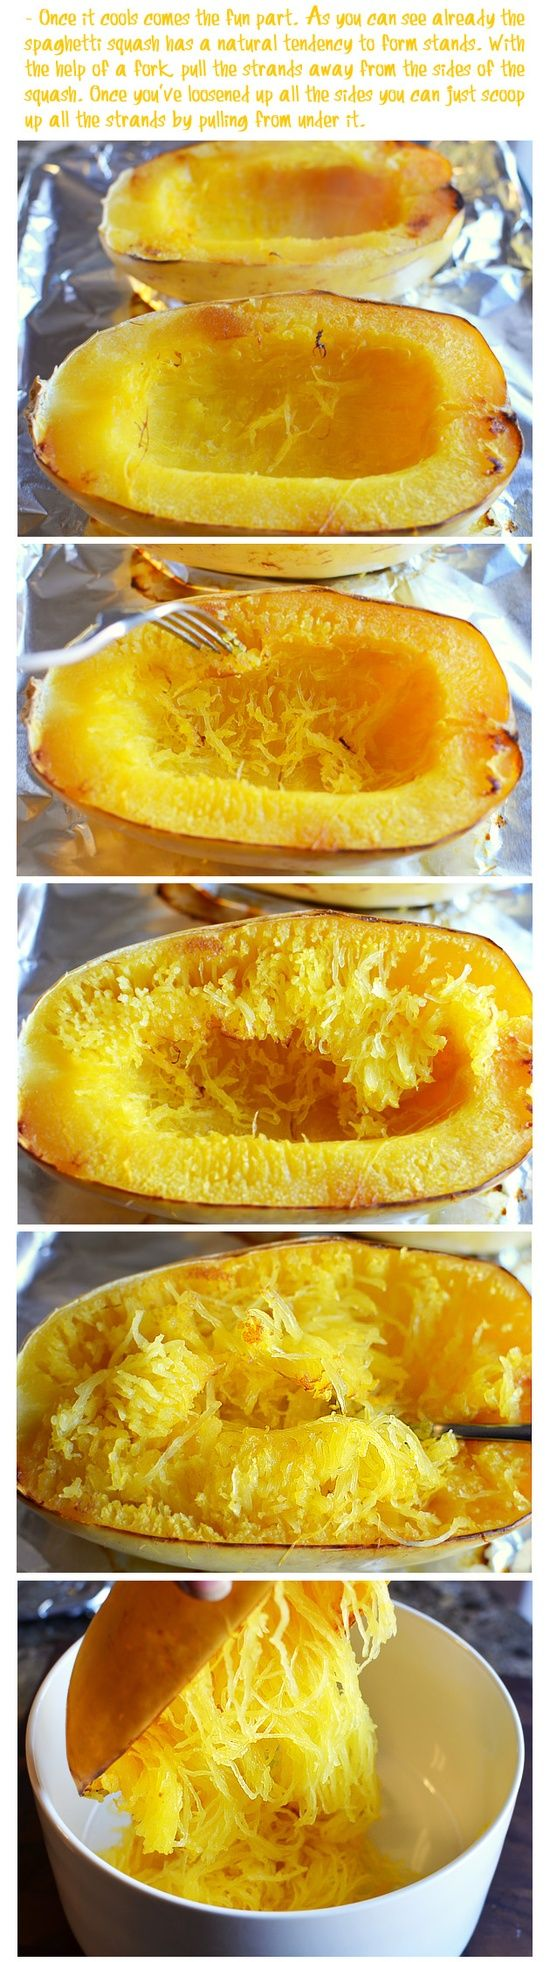 How to cook spaghetti squash...simple and delicious recipe included..